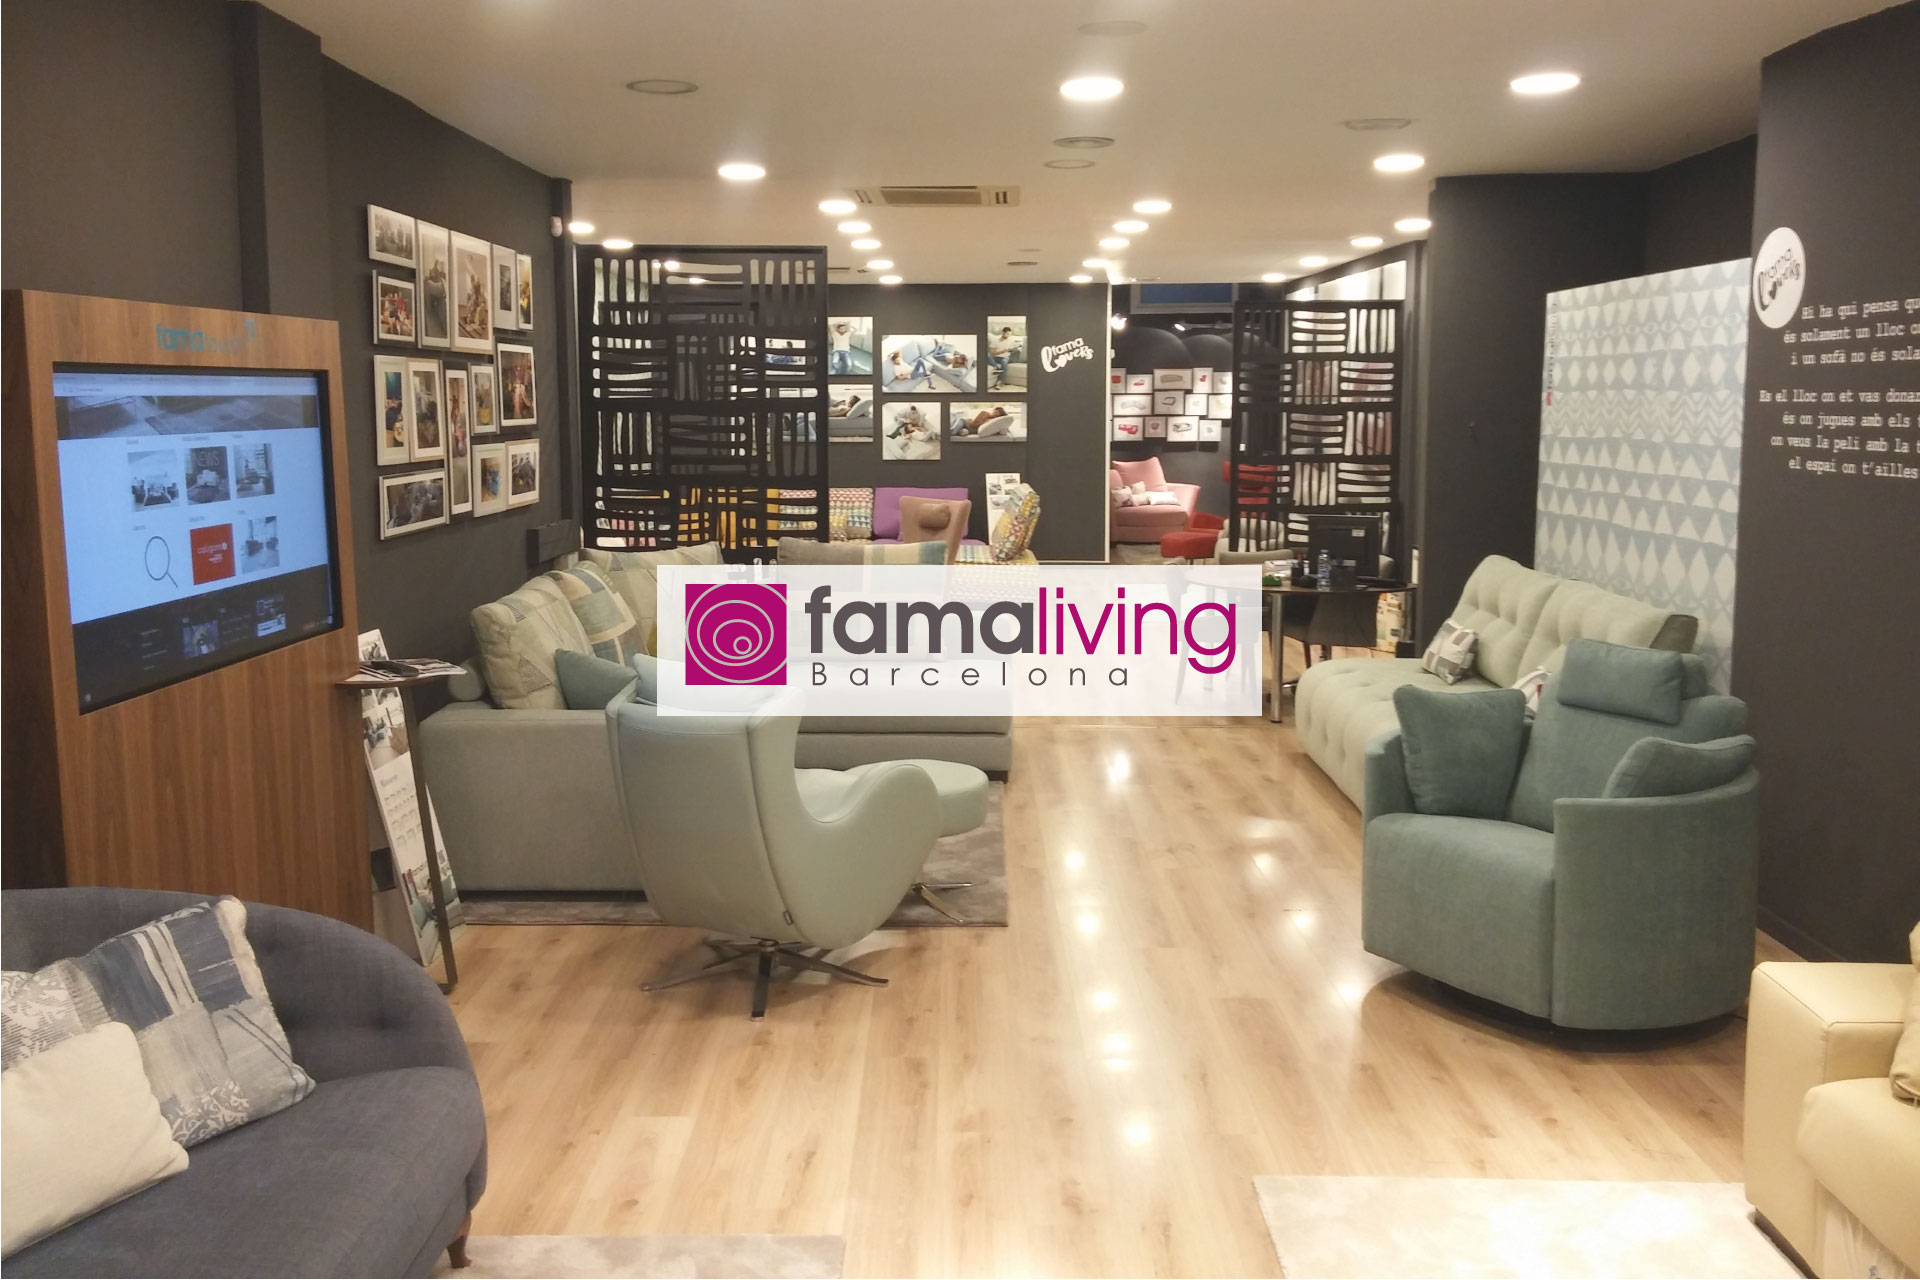 https://www.famaliving.com/barcelona-en